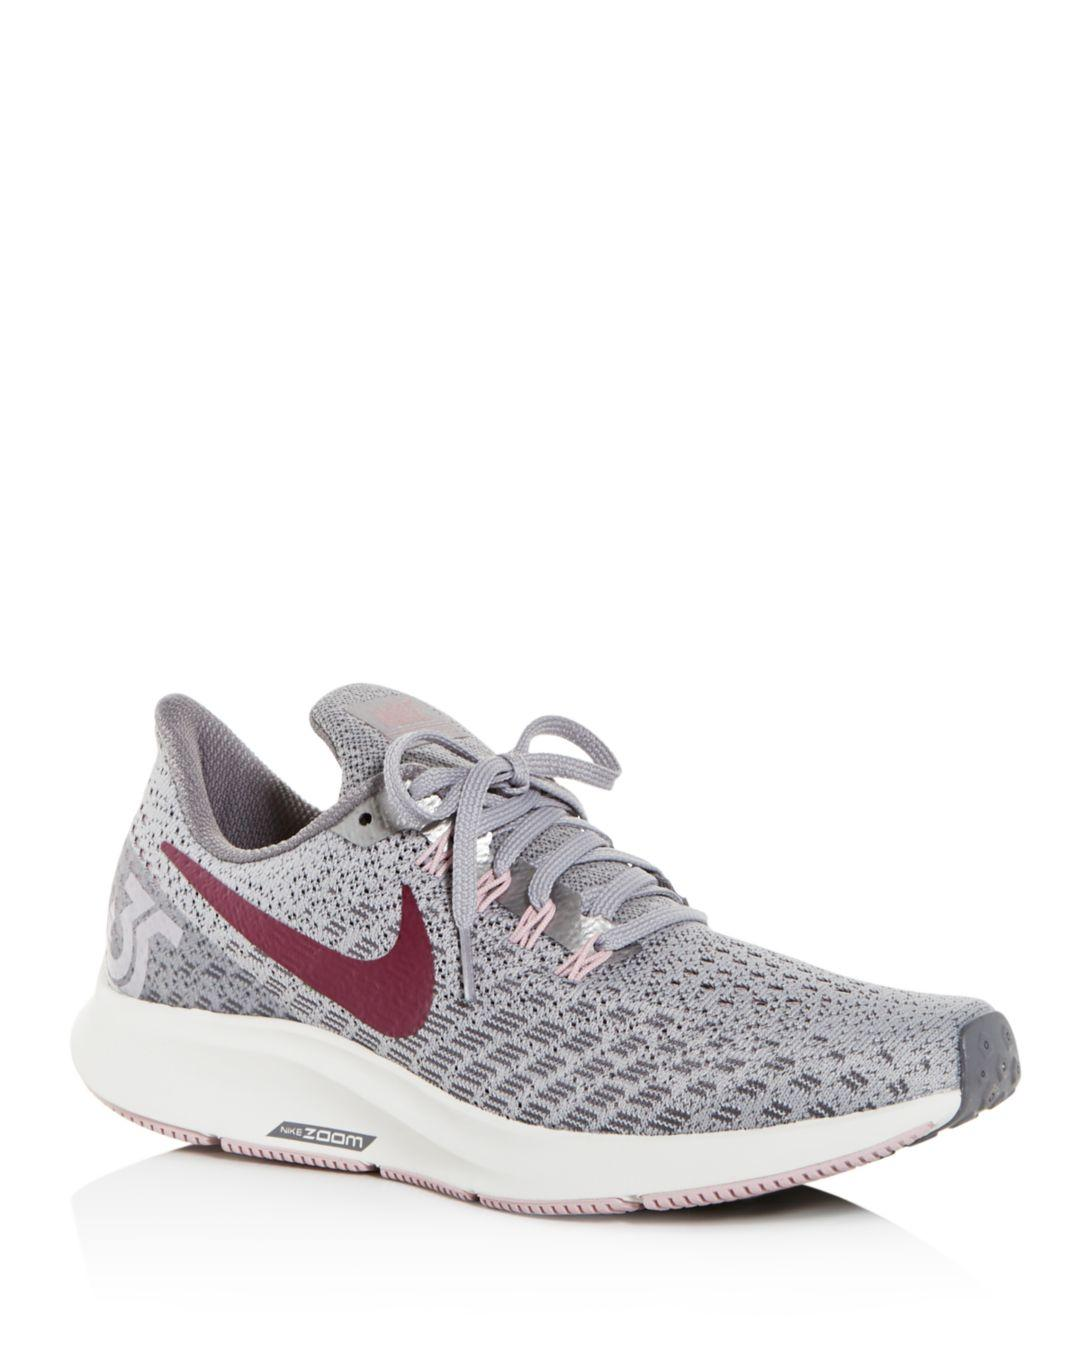 cb0bd3ddc0098 Lyst - Nike Women's Air Zoom Pegasus Knit Low-top Sneakers in Gray